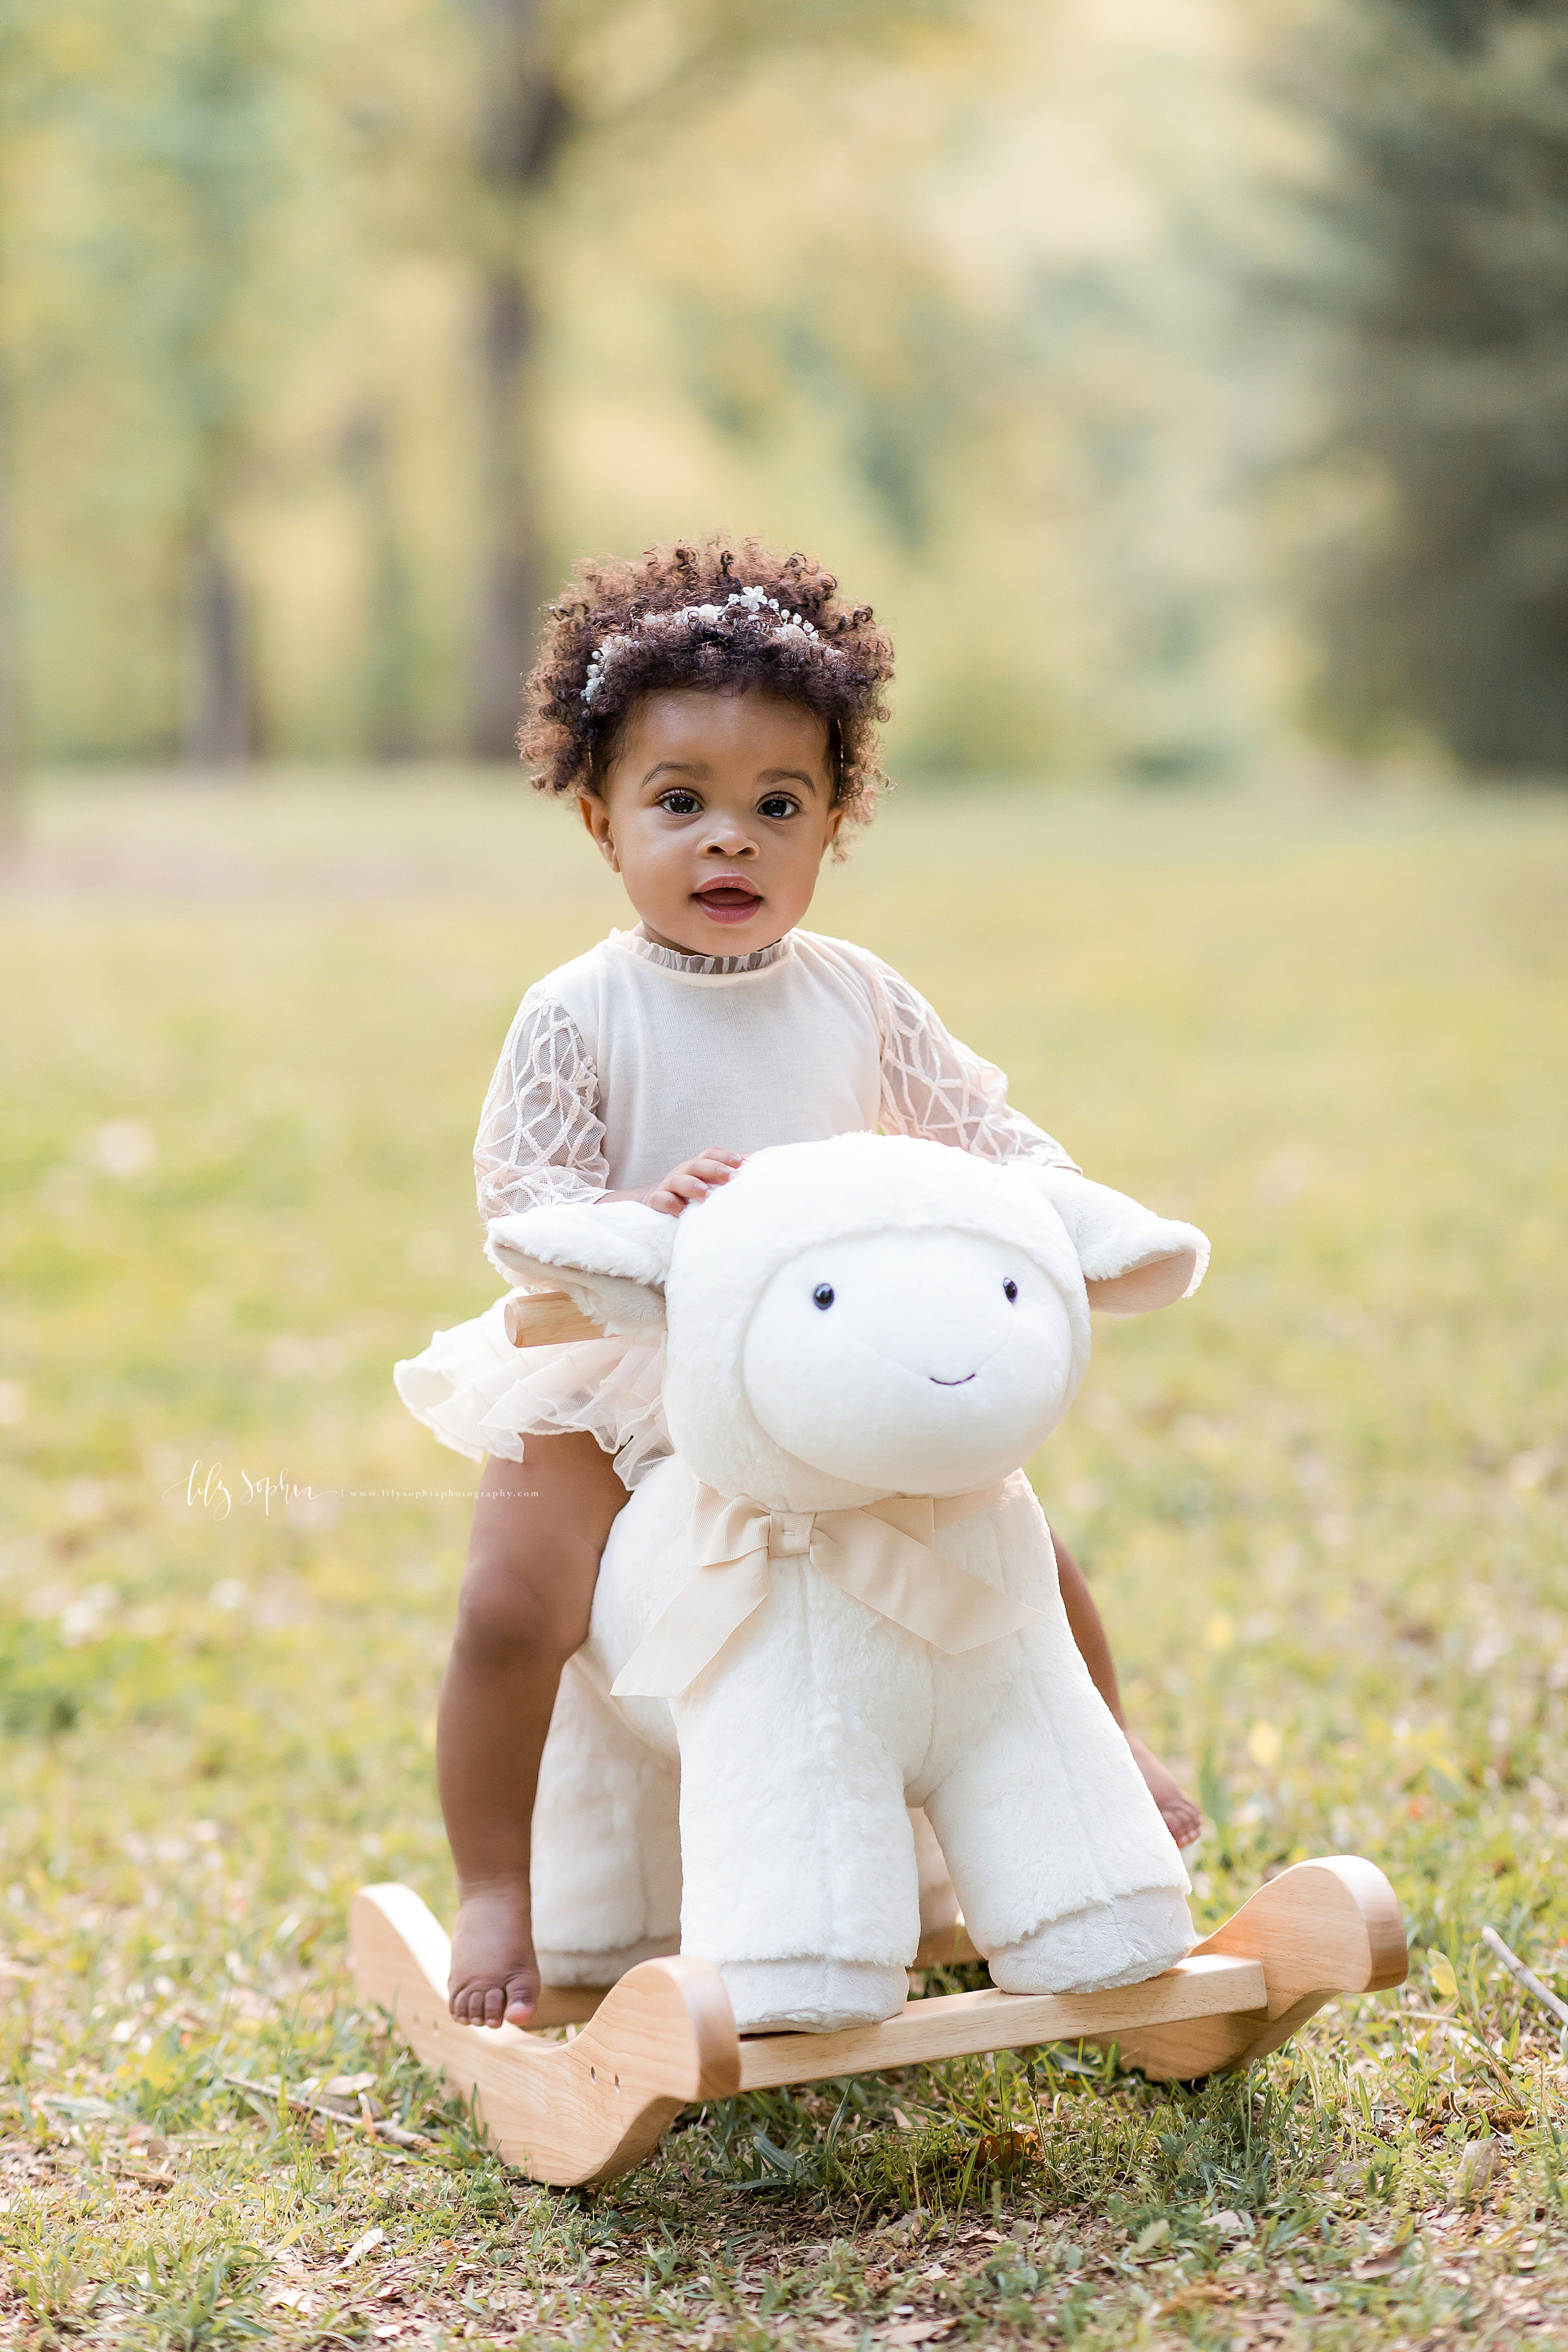 Image of an African-American one year old girl riding a rocking lamb at sunset in an Atlanta park.